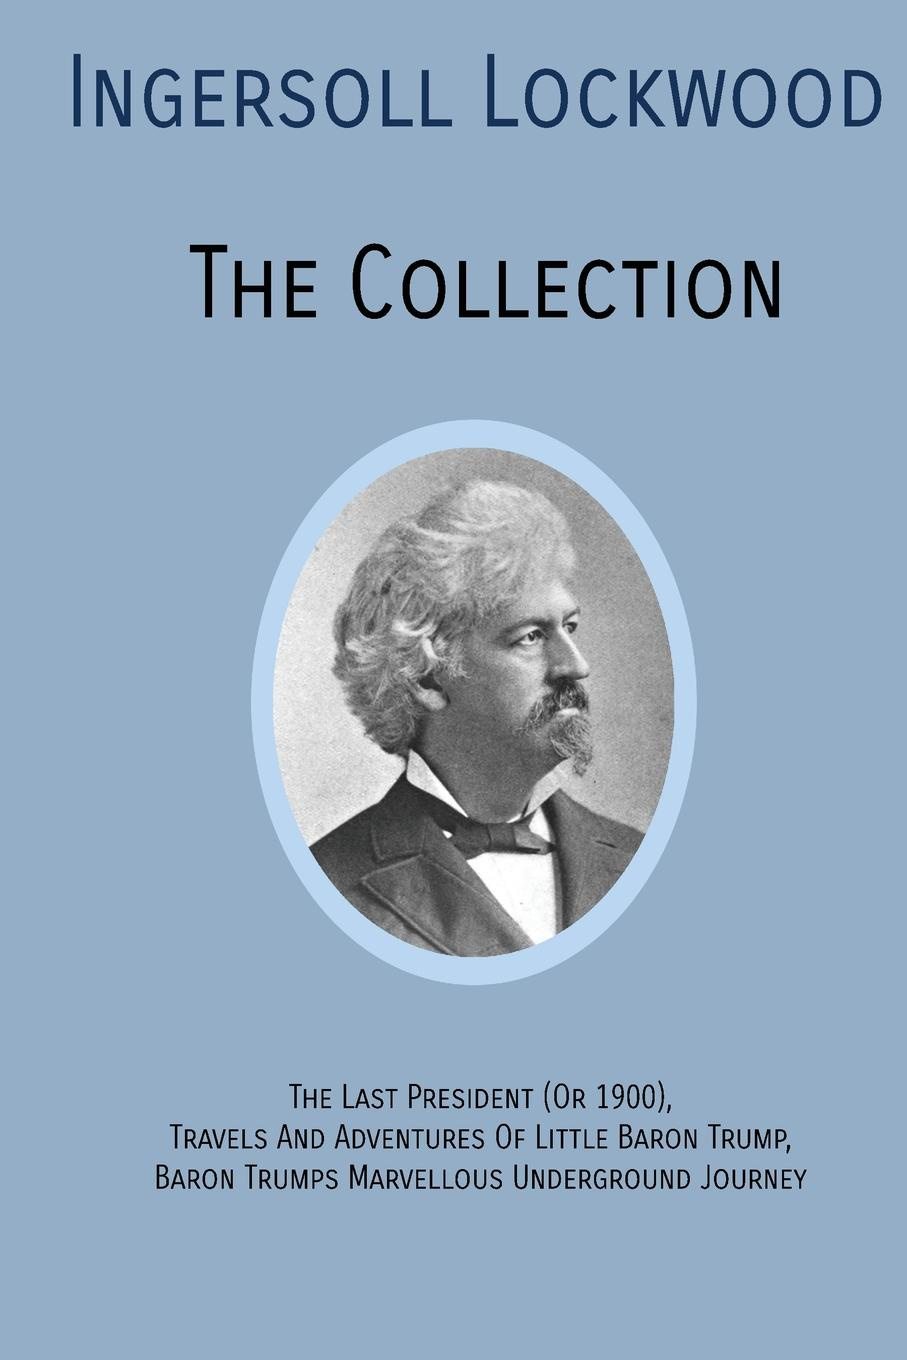 Ingersoll Lockwood INGERSOLL LOCKWOOD The Collection. The Last President (Or 1900),Travels And Adventures Of Little Baron Trump,Baron Trumps. Marvellous Underground Journey robert green ingersoll the works of robert g ingersoll v 9